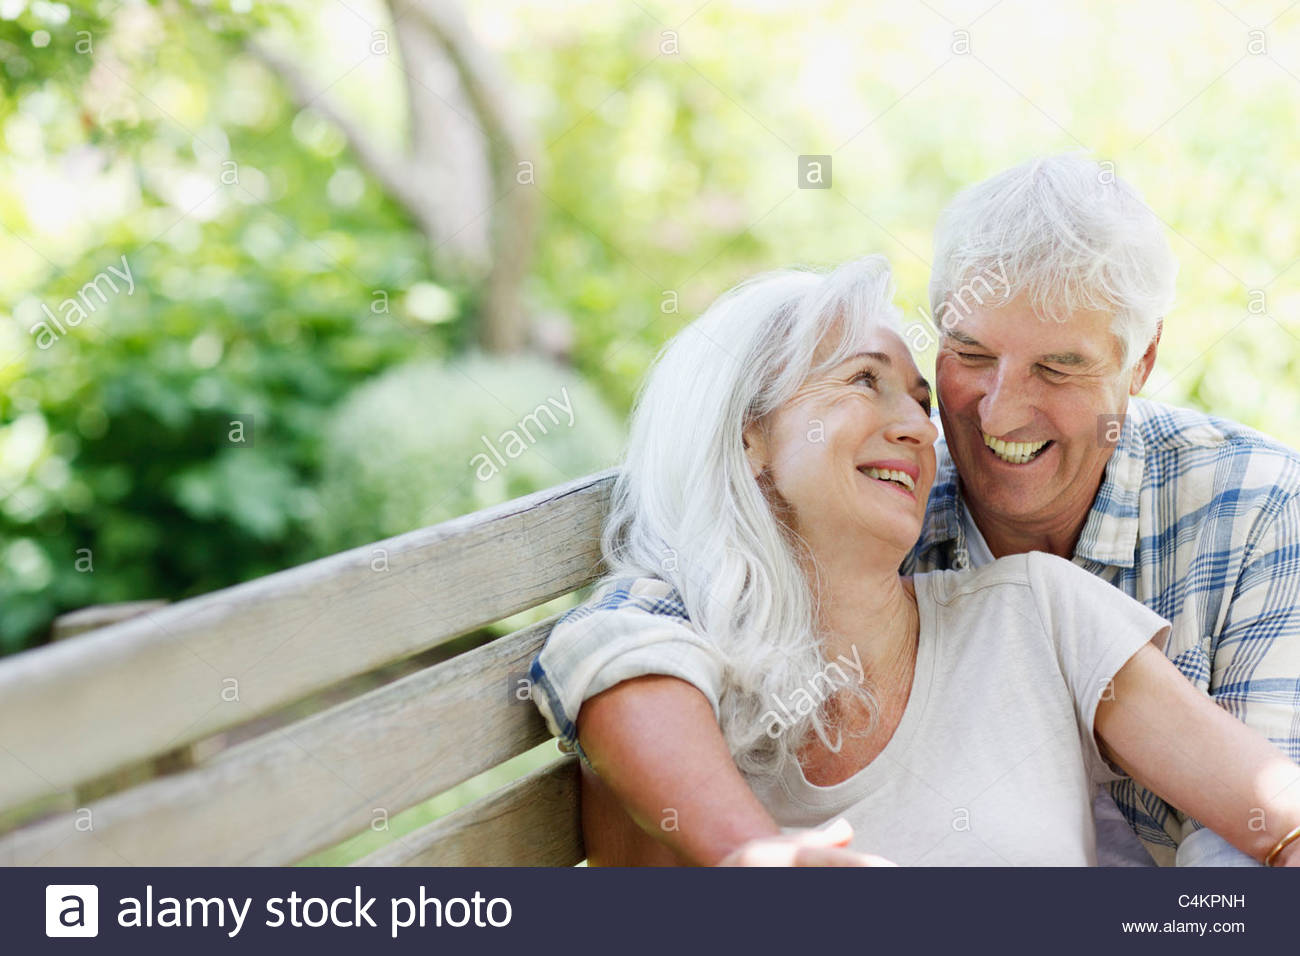 Senior couple on bench Photo Stock